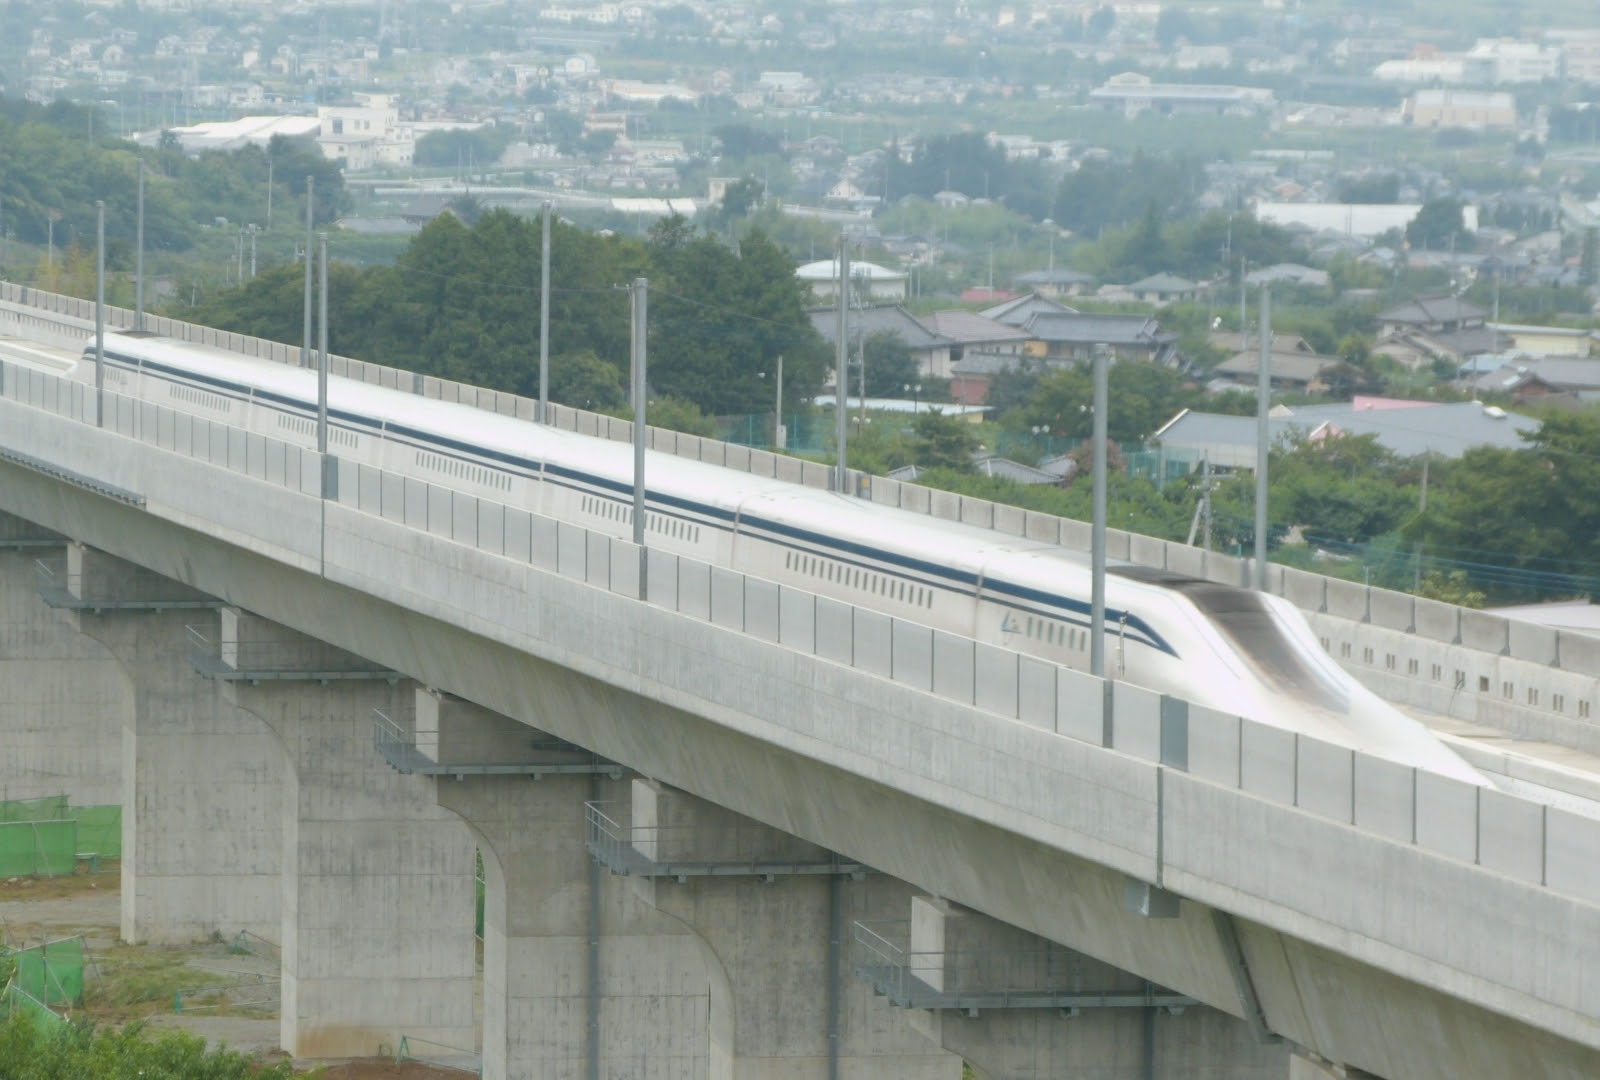 JR Central SCMaglev L0 Series Shinkansen 201408081002.jpg